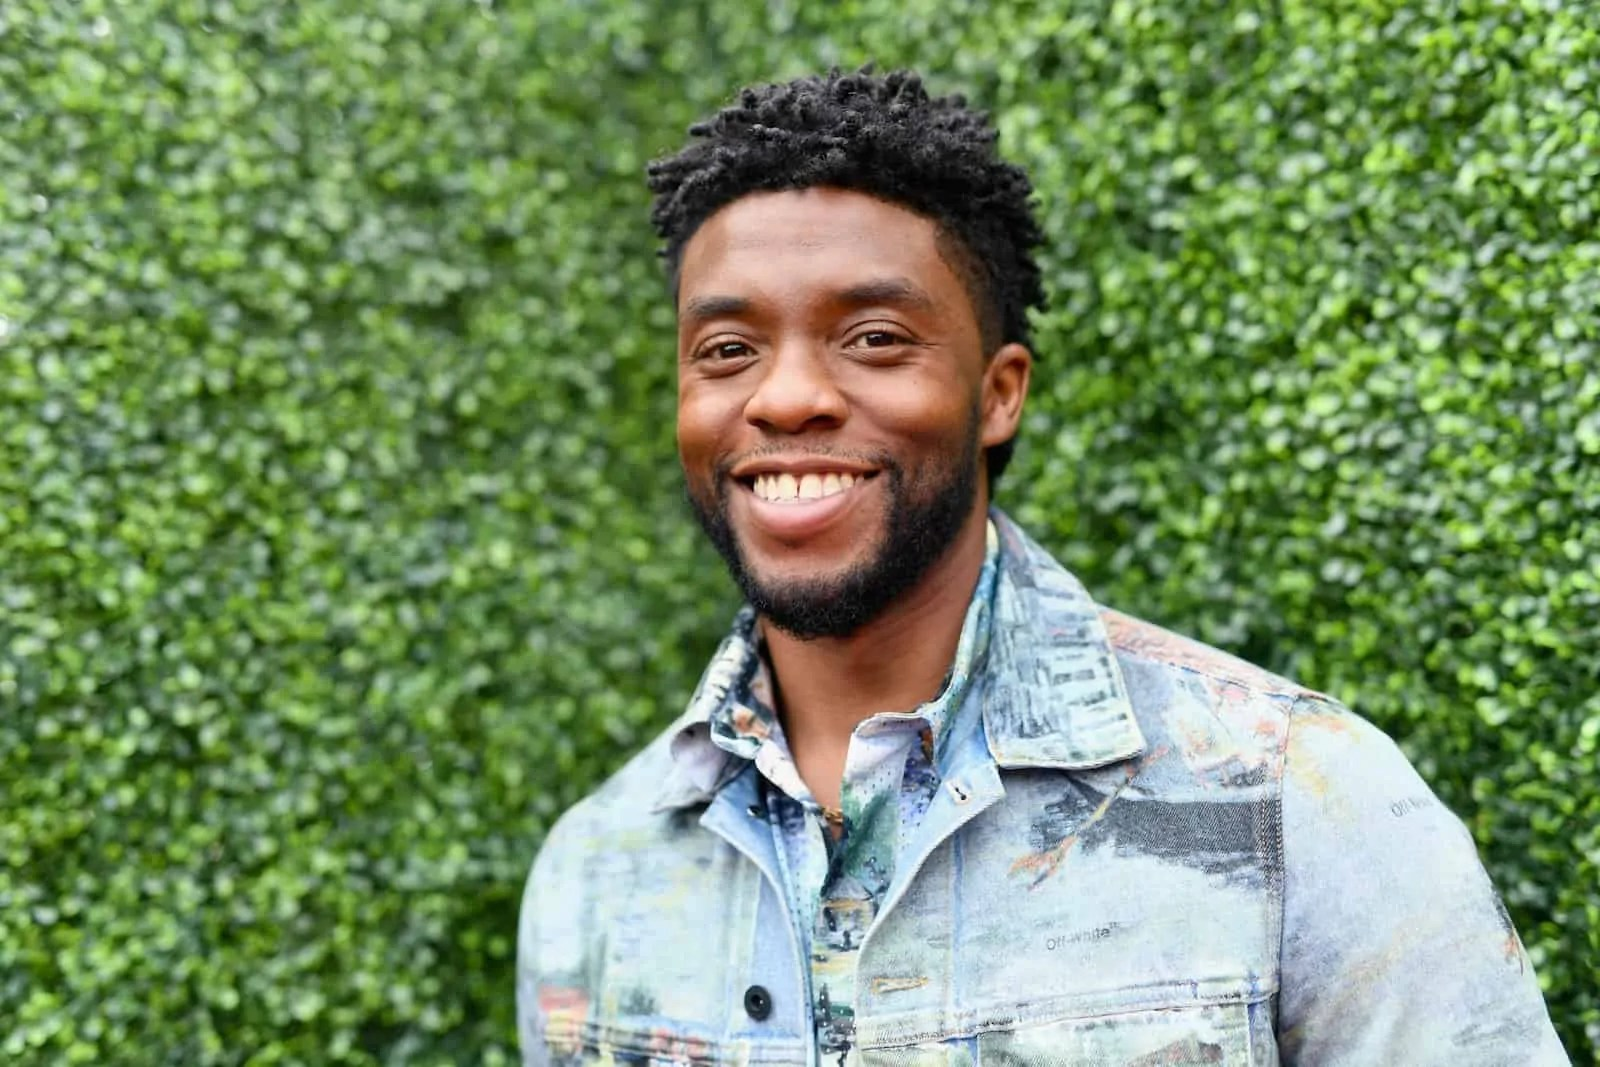 Admit it, You Just Can't Get Enough of Chadwick Boseman!